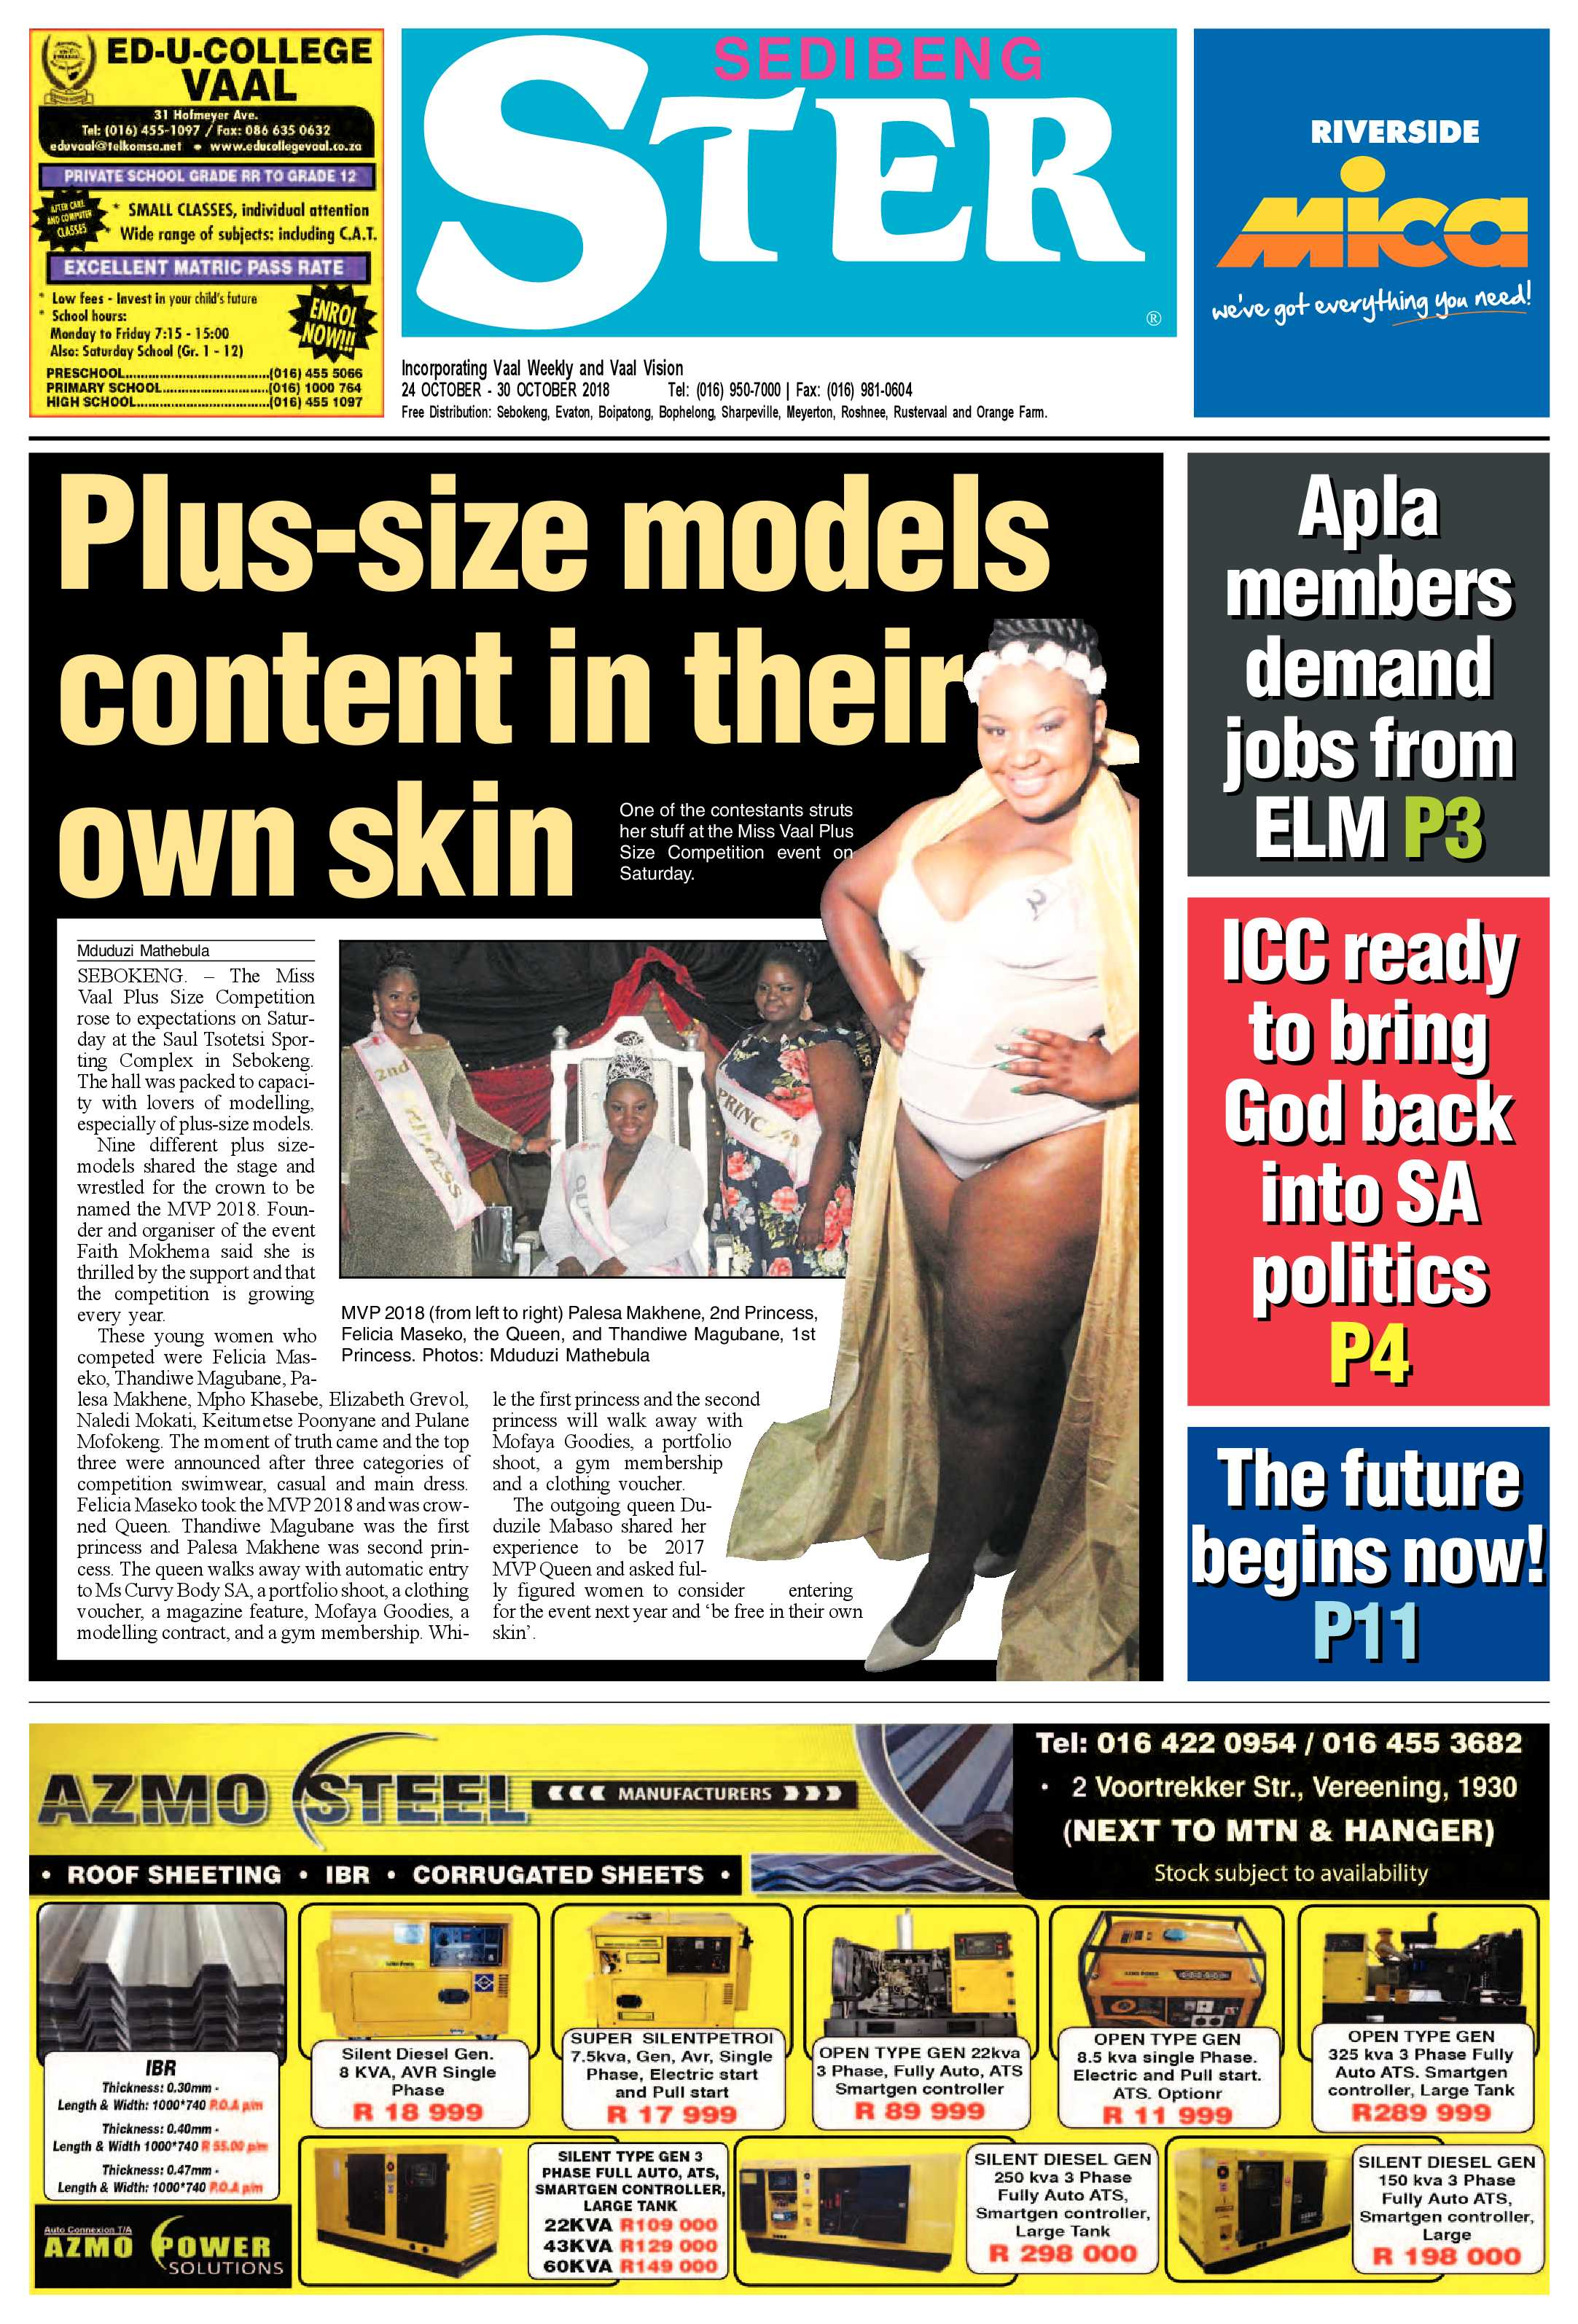 ePaper Publications Archive - Page 4 of 11 - Sedibeng Ster